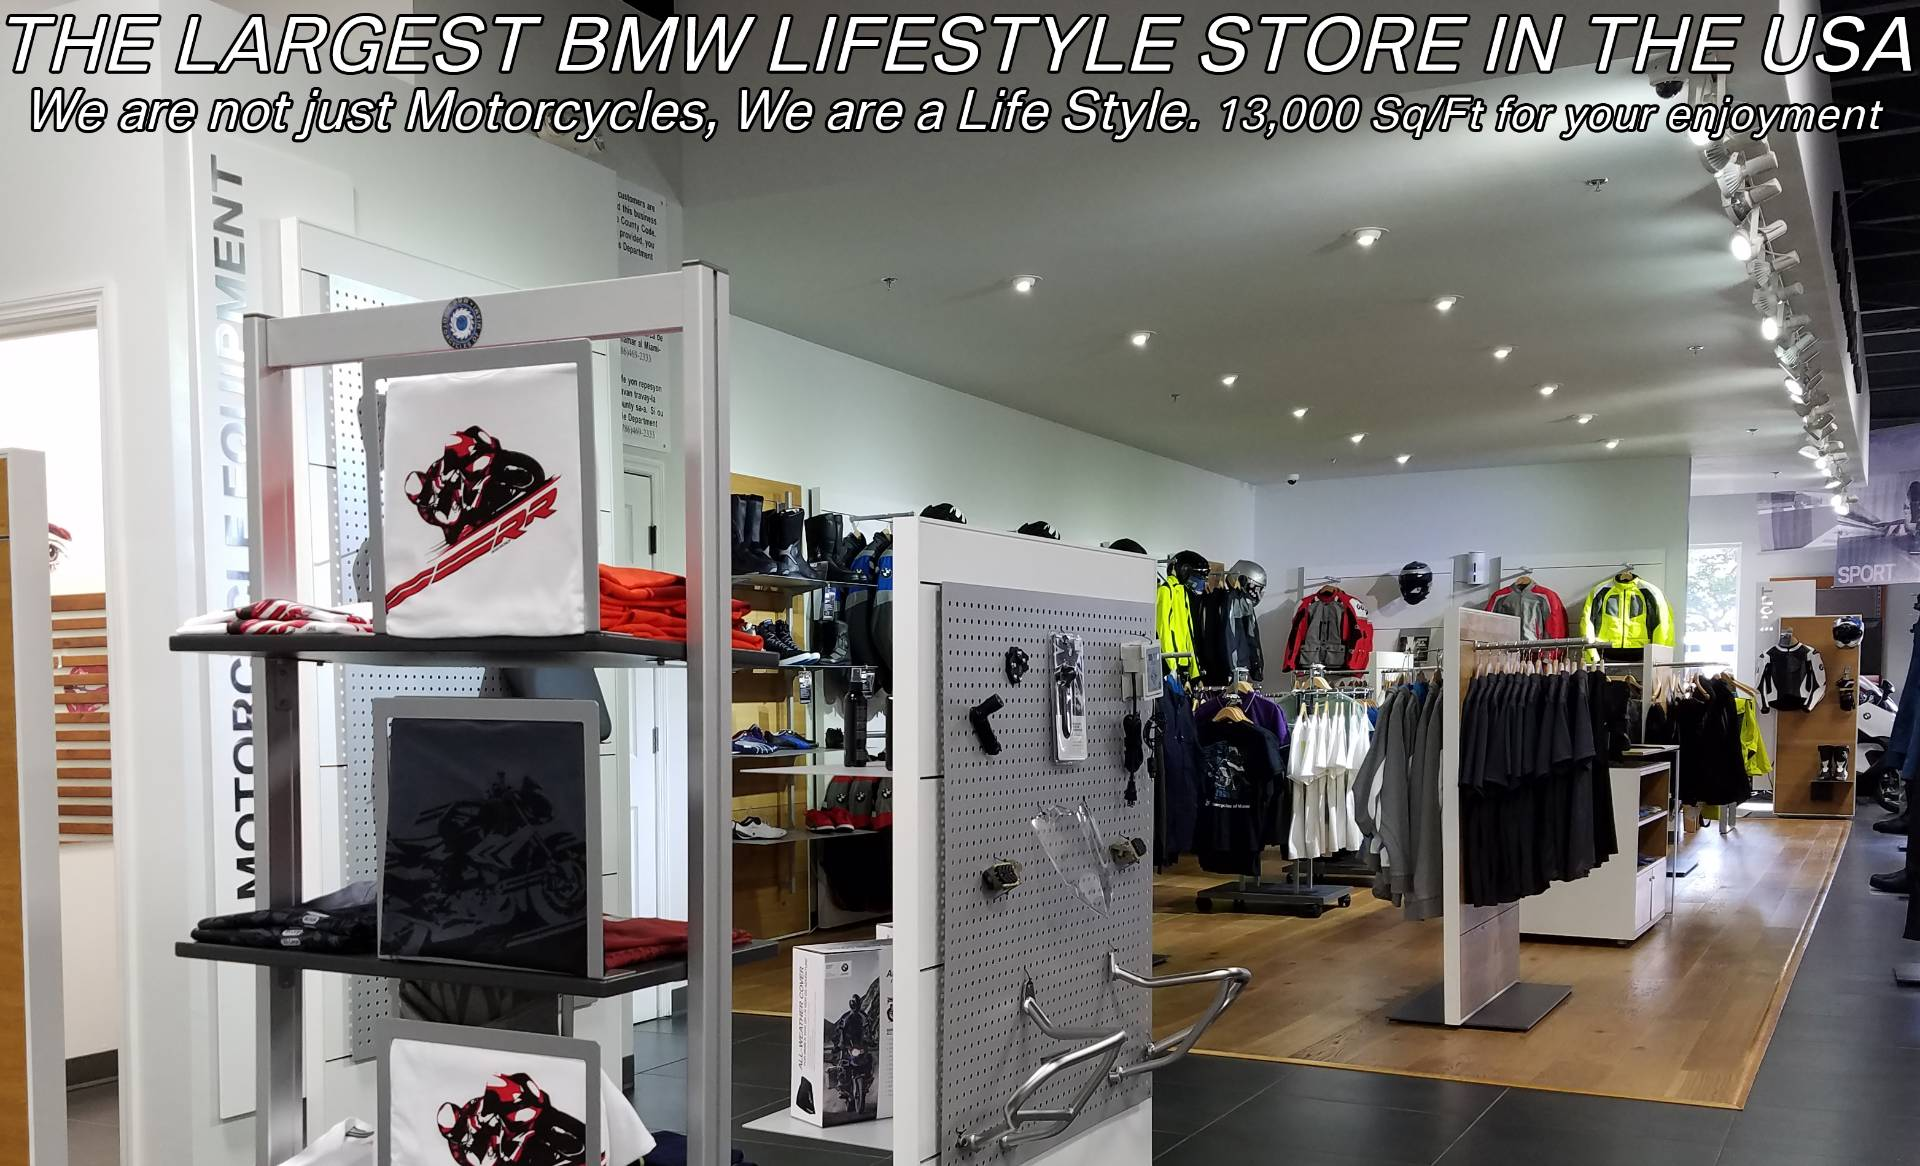 New 2019 BMW F 850 GSA for sale, BMW F 850GSA for sale, BMW Motorcycle F850GSA, new BMW 850 Adventure, Adventure. BMW Motorcycles of Miami, Motorcycles of Miami, Motorcycles Miami, New Motorcycles, Used Motorcycles, pre-owned. #BMWMotorcyclesOfMiami #MotorcyclesOfMiami #MotorcyclesMiami - Photo 53